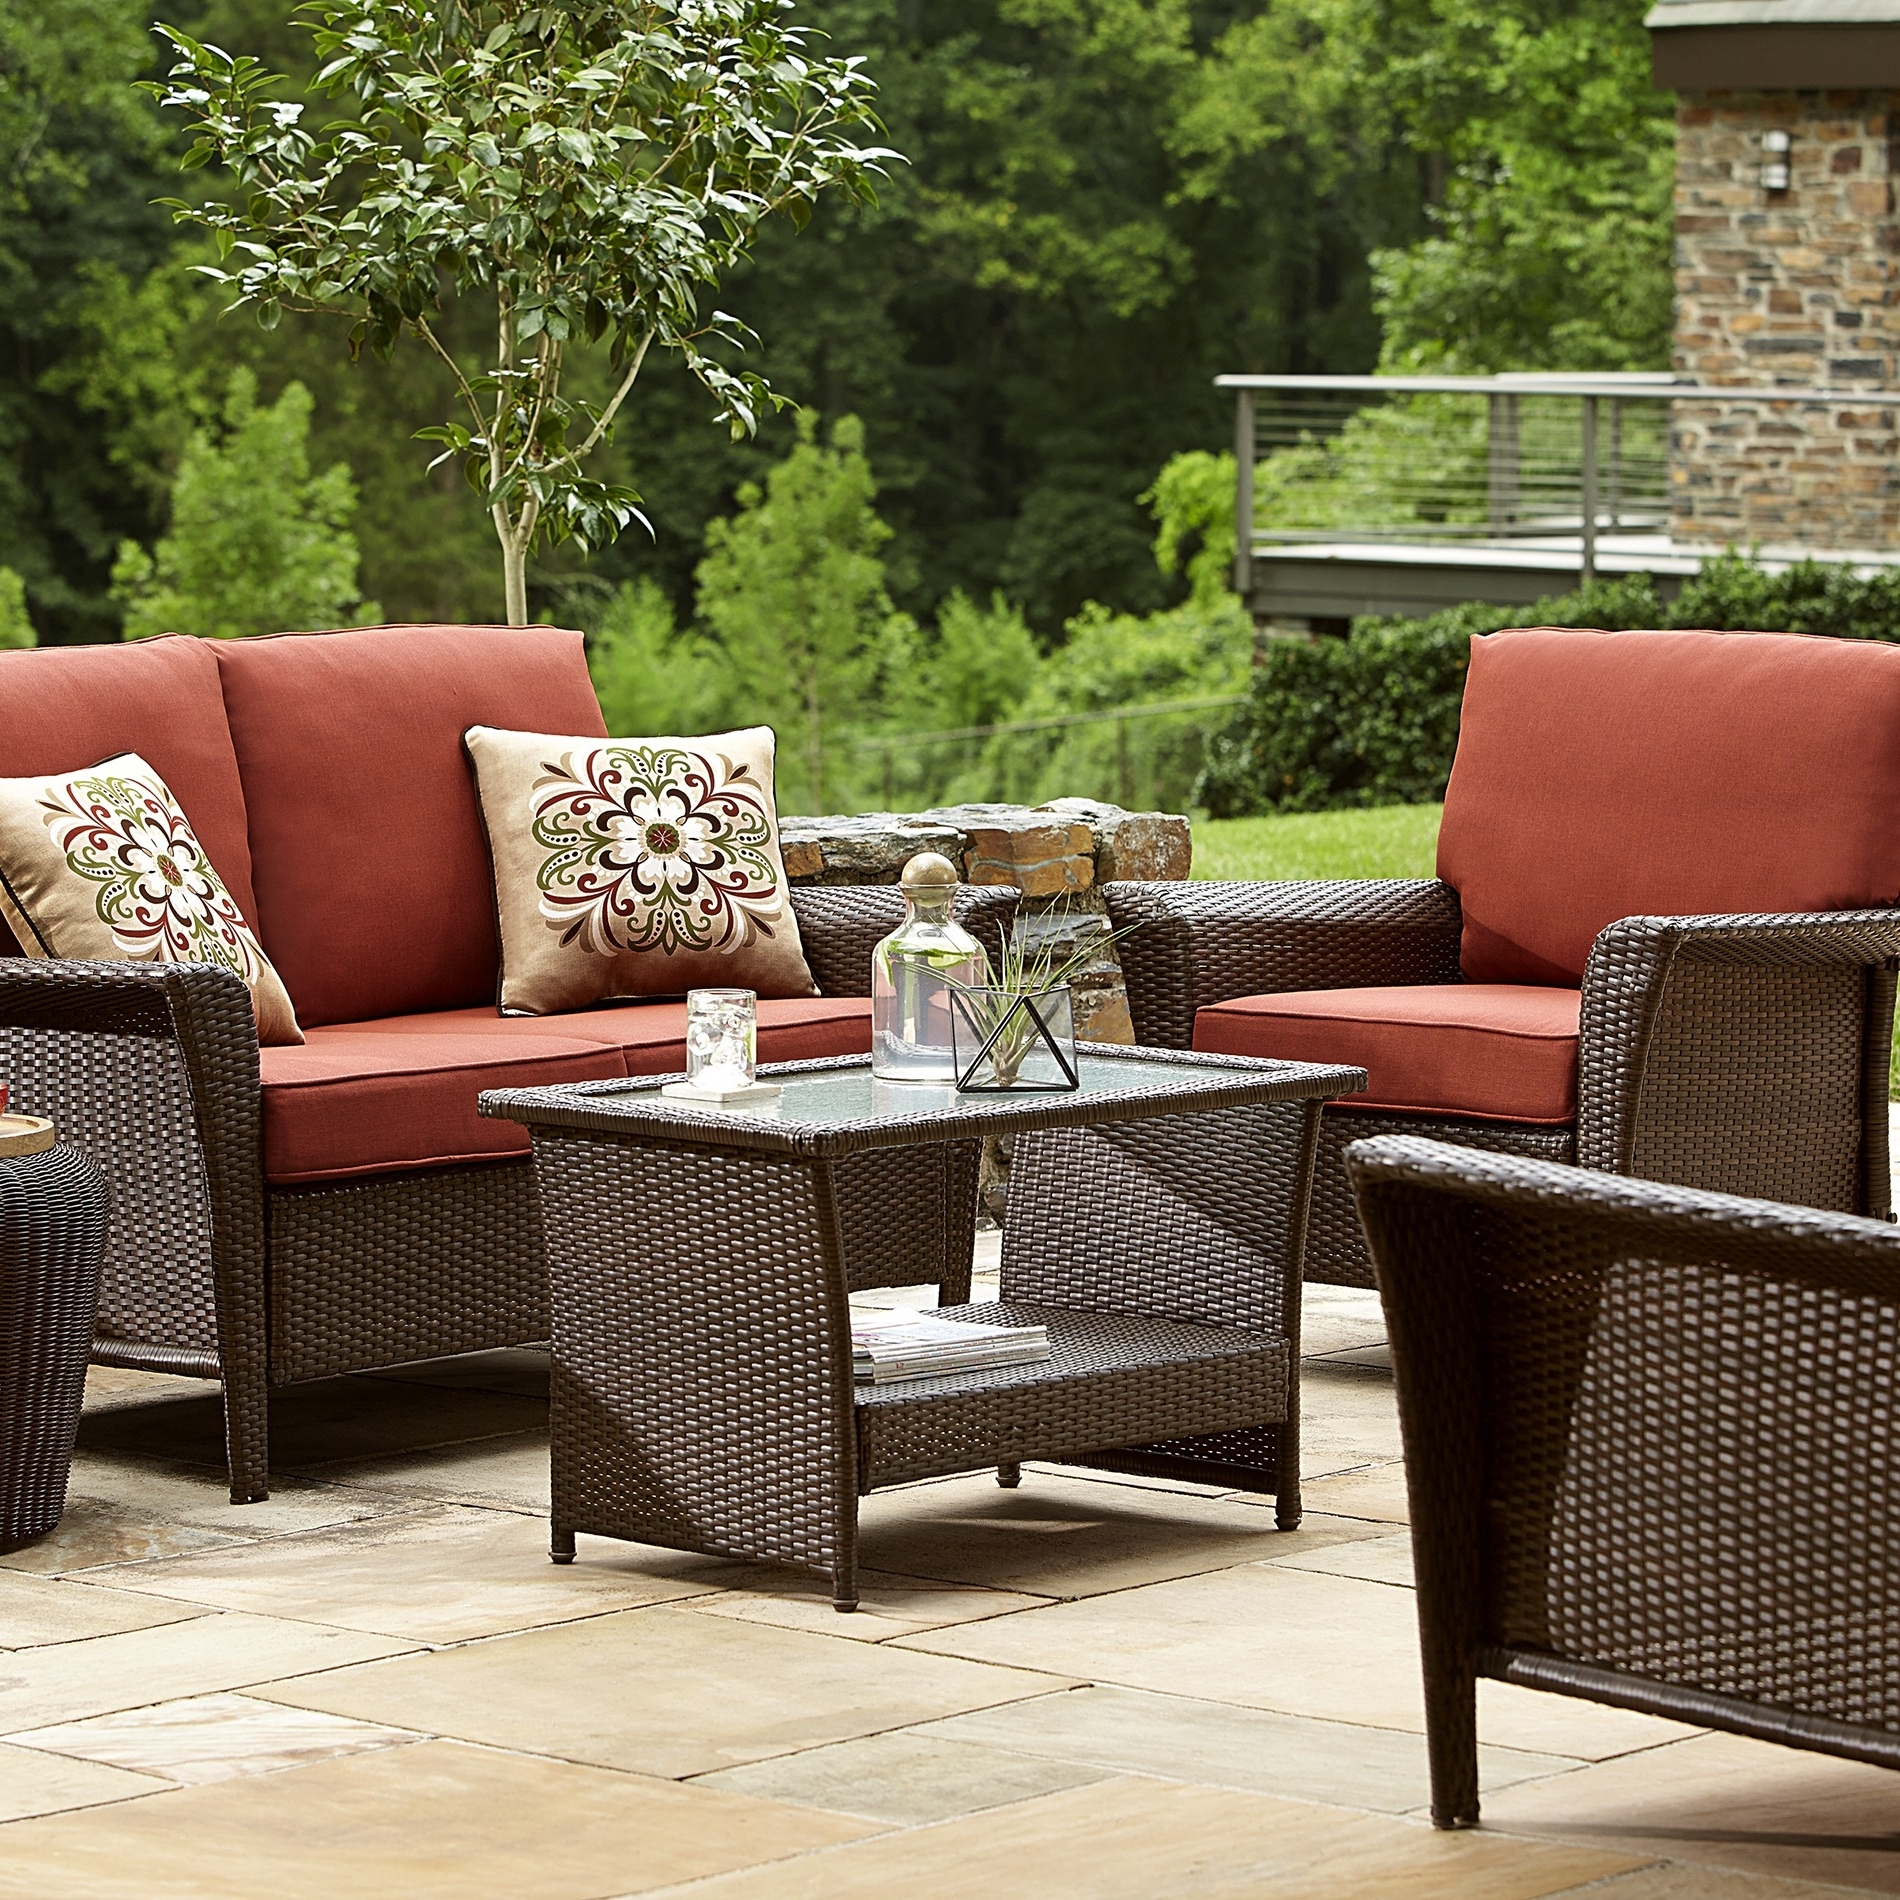 Fantastic Deep Seating Patio Furniture Clearance Dã©cor Gallery In Favorite Sears Patio Furniture Conversation Sets (View 5 of 20)